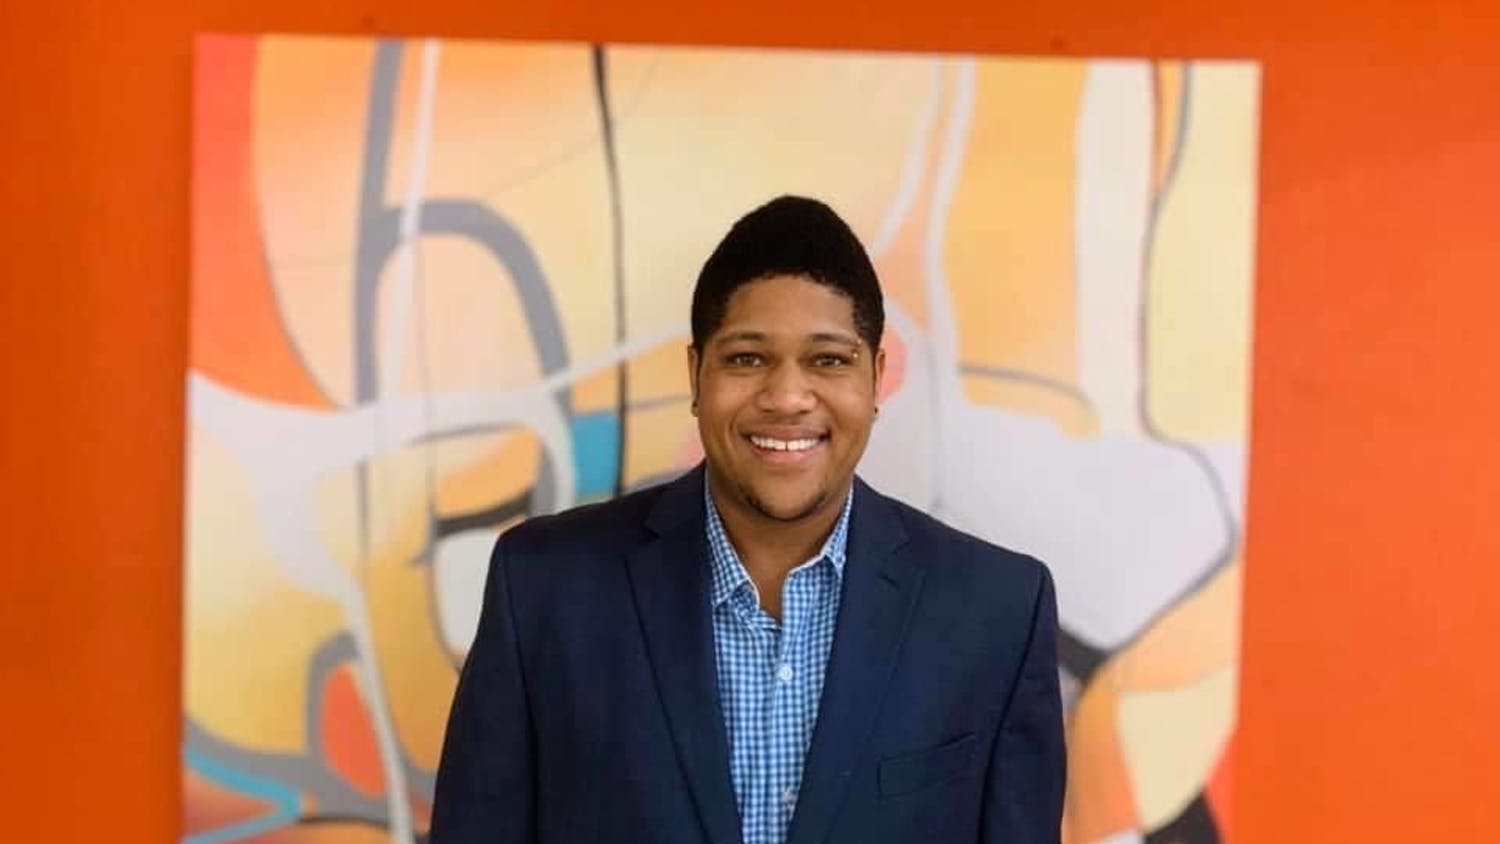 Errol Nelson is a 2020 UF graduate and a member of both the Black and LGBTQ+ communities.